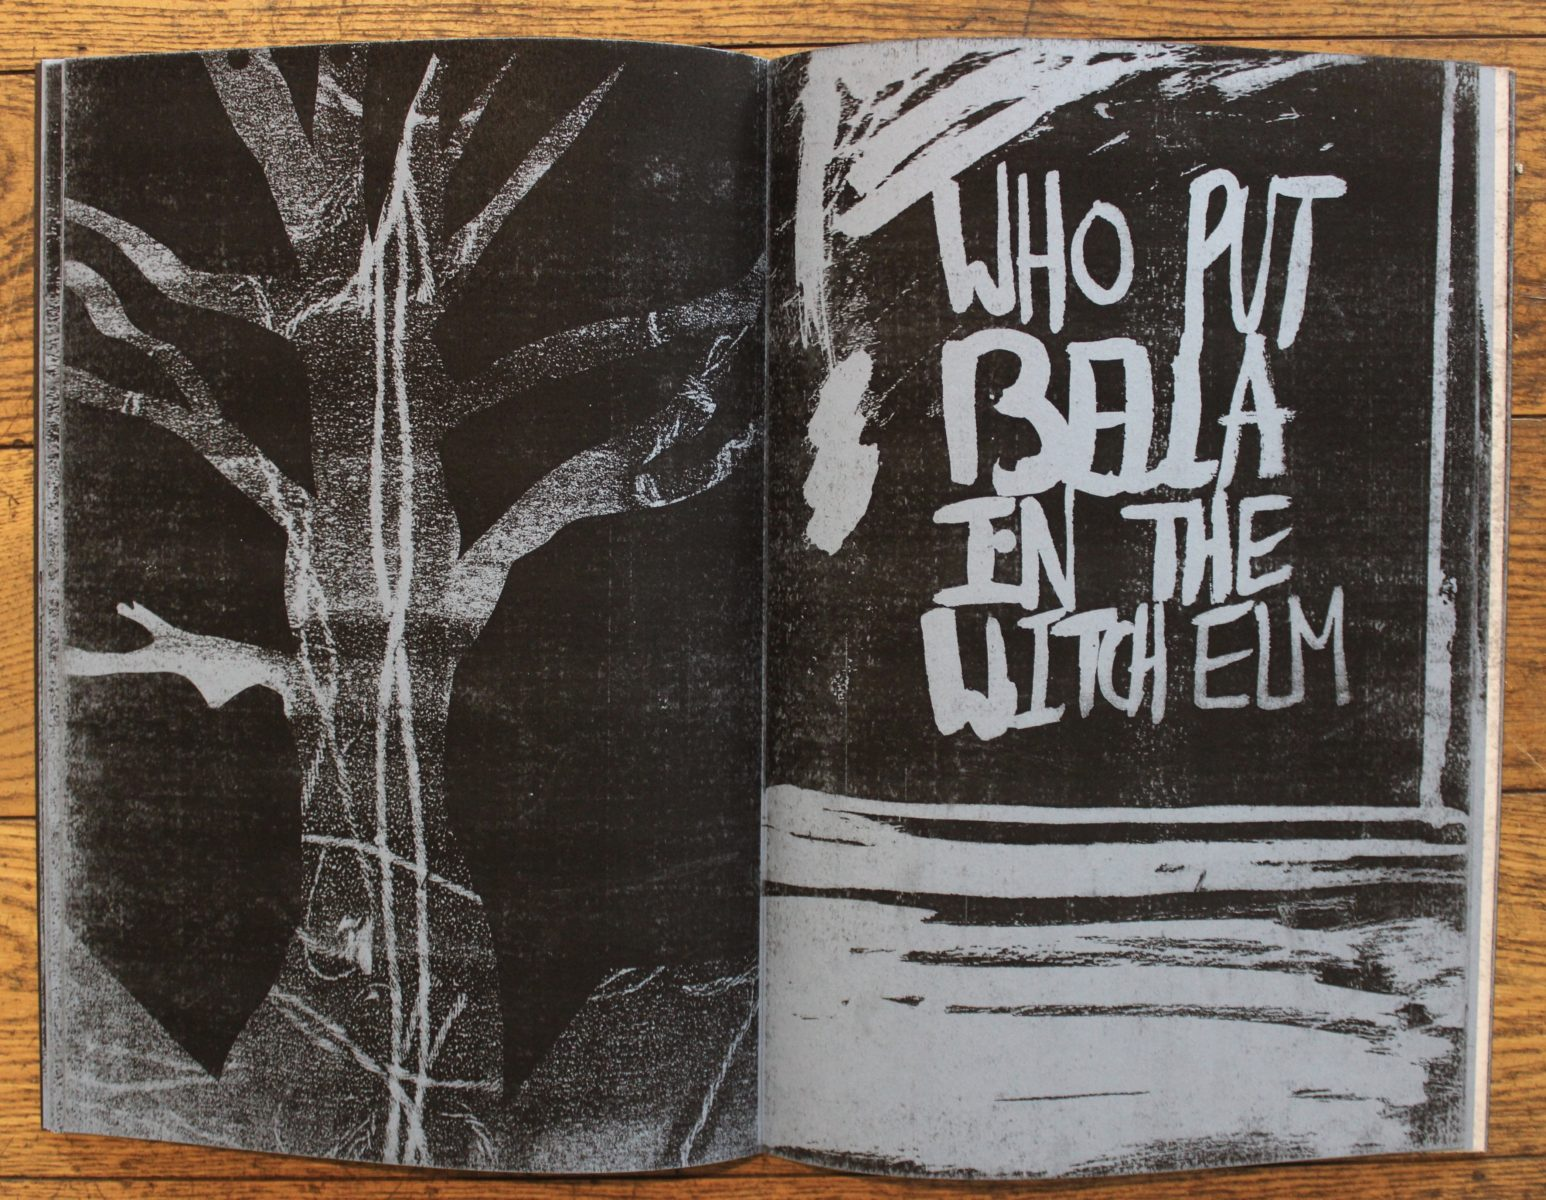 44889 || 6155 || Who put Bella in the Witch Elm? (book)